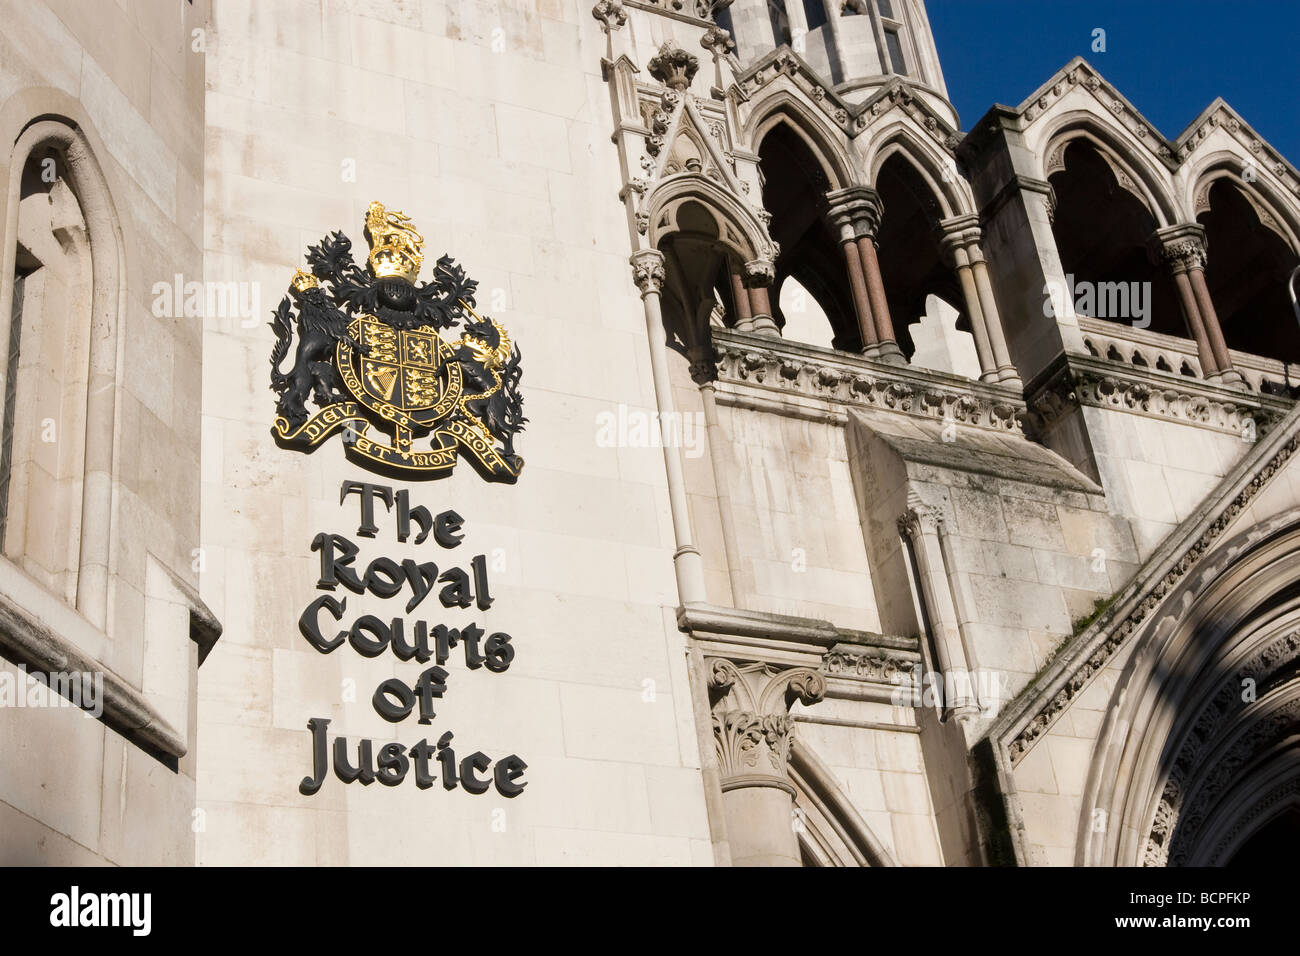 Royal Courts of Justice London Fleet Street - Stock Image